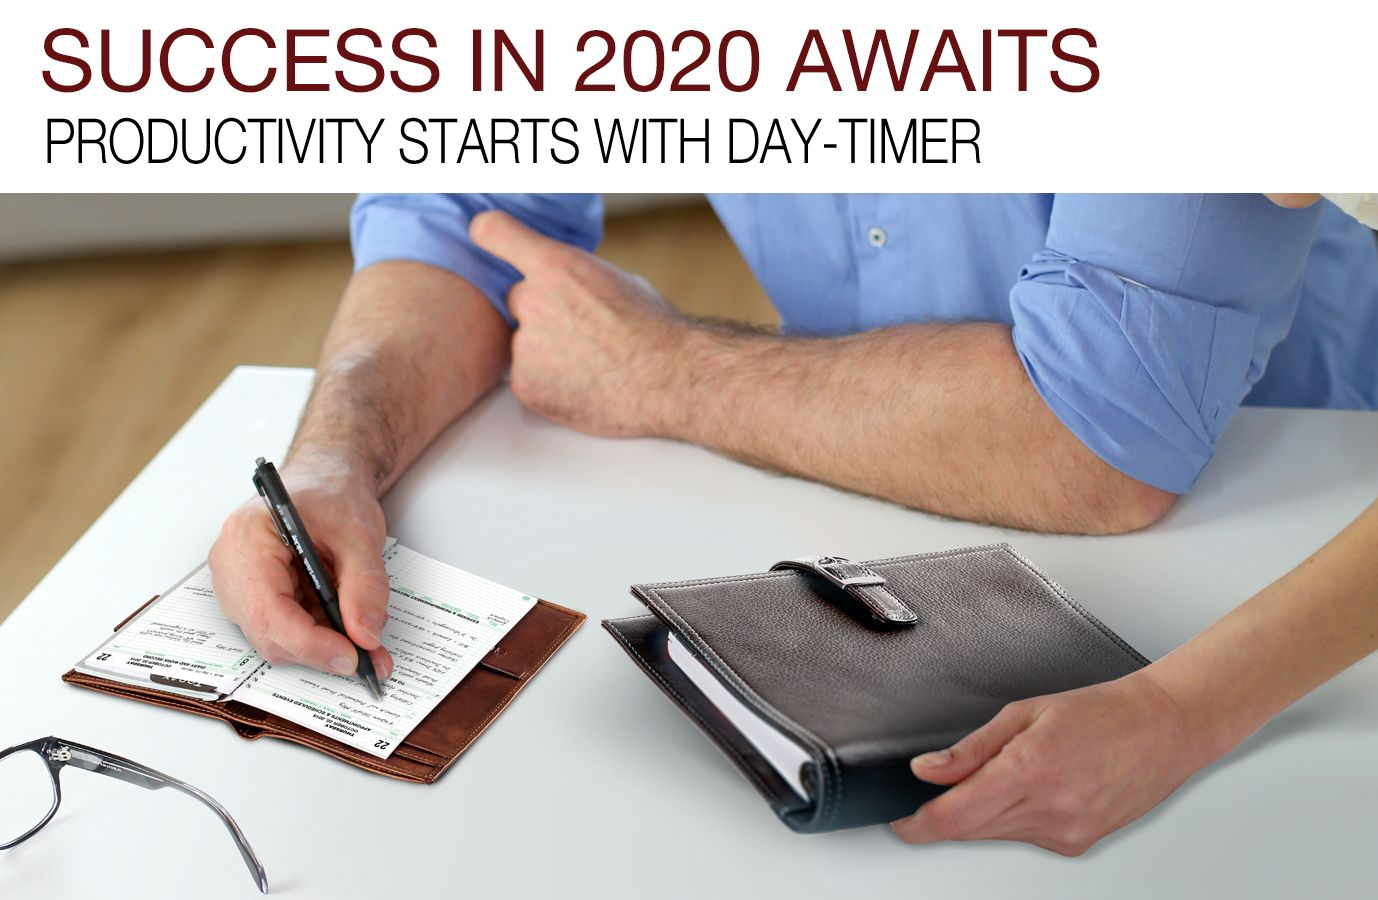 Success in 2019 Awaits productivity starts with Day-timer